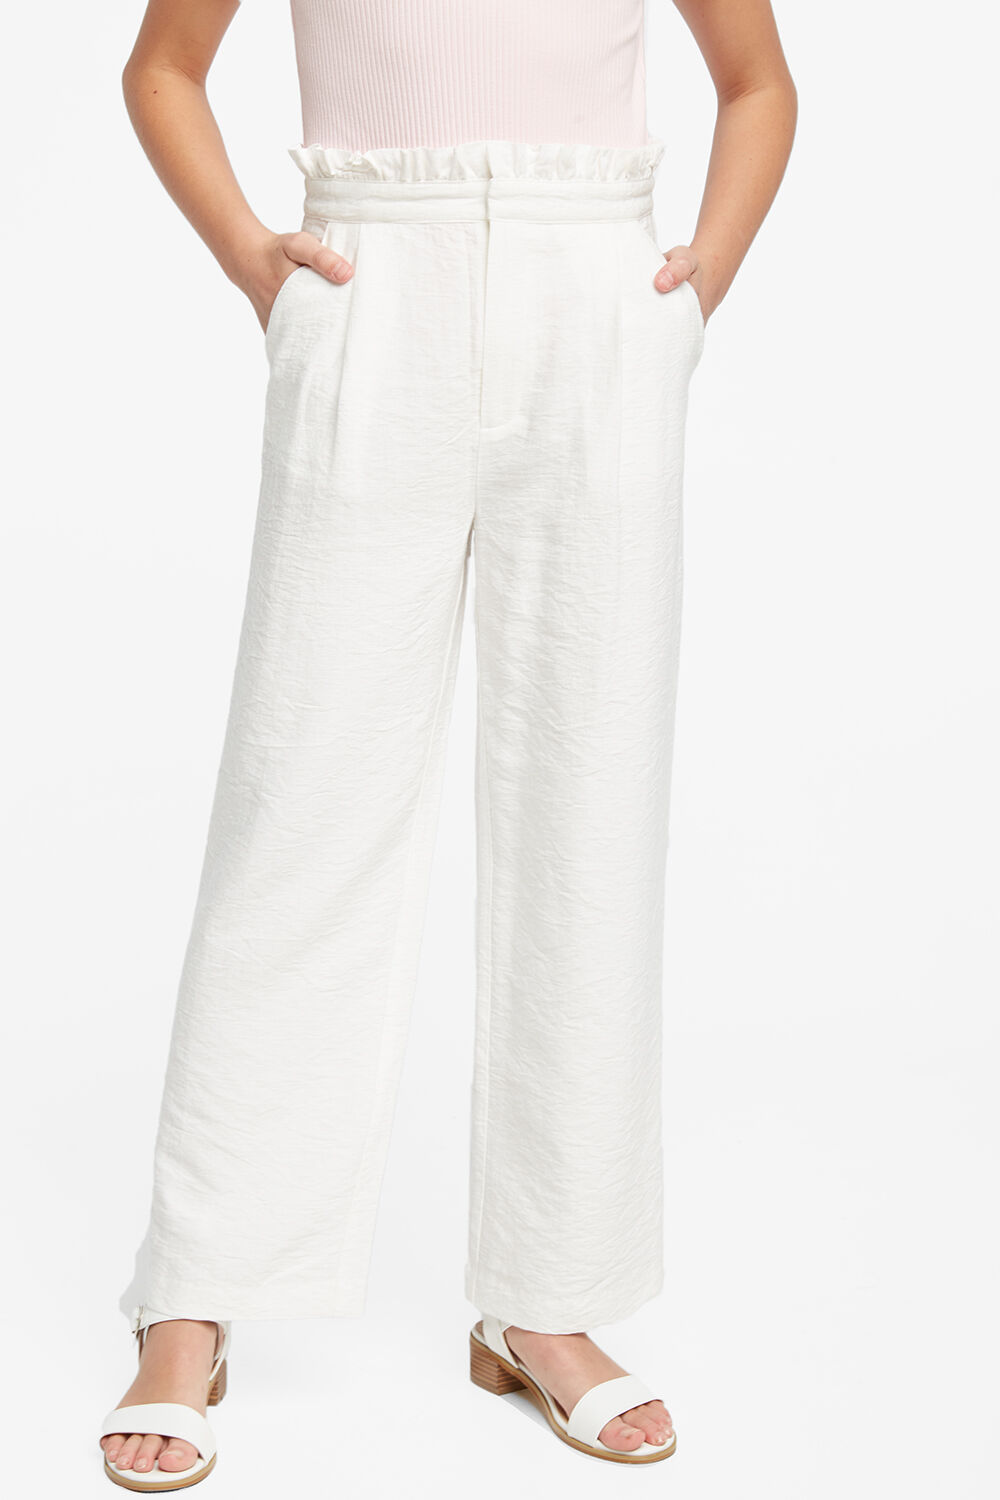 NATALIE CULLOTE PANT in colour CLOUD DANCER